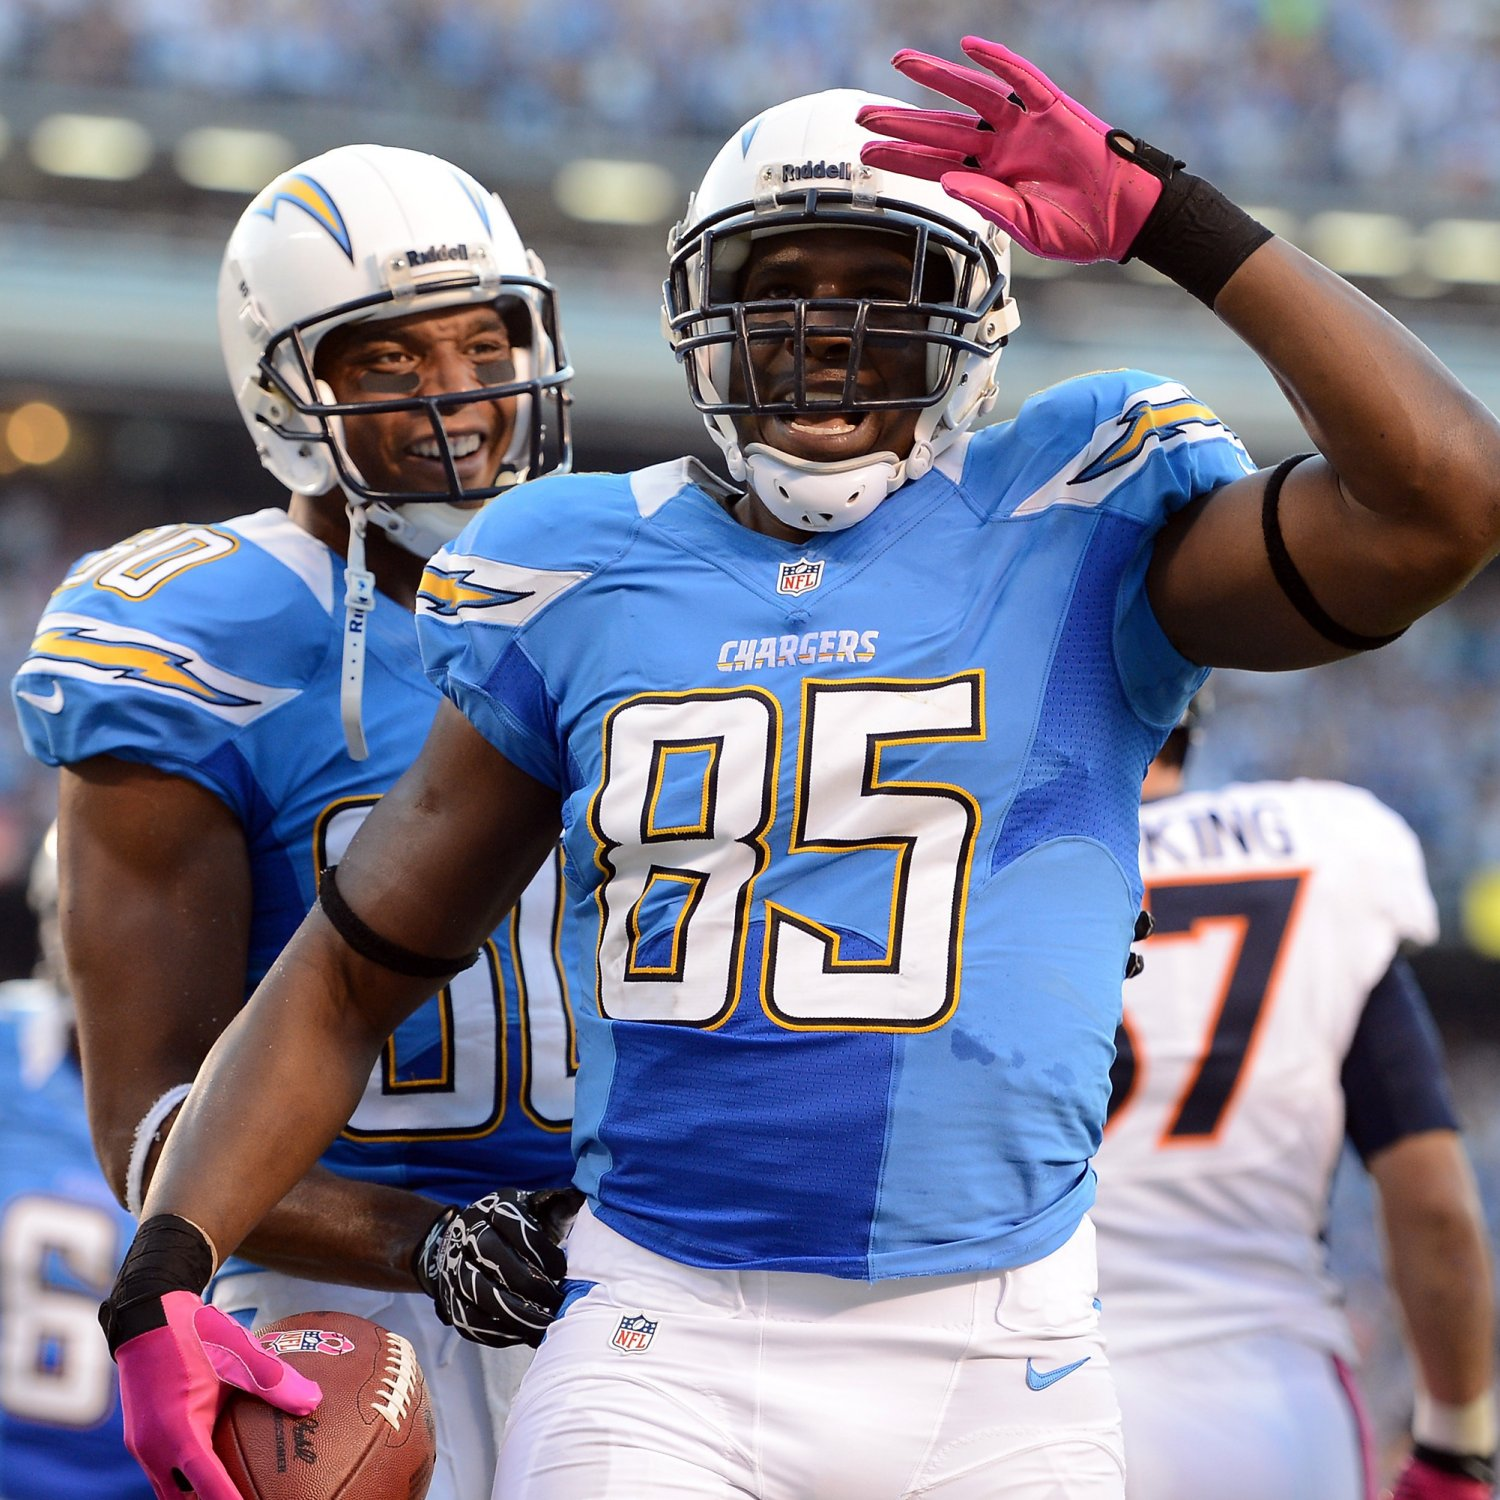 San Diego Chargers Bye Week 2014: NFL Week 10 Picks: Predicting Critical Games That Will